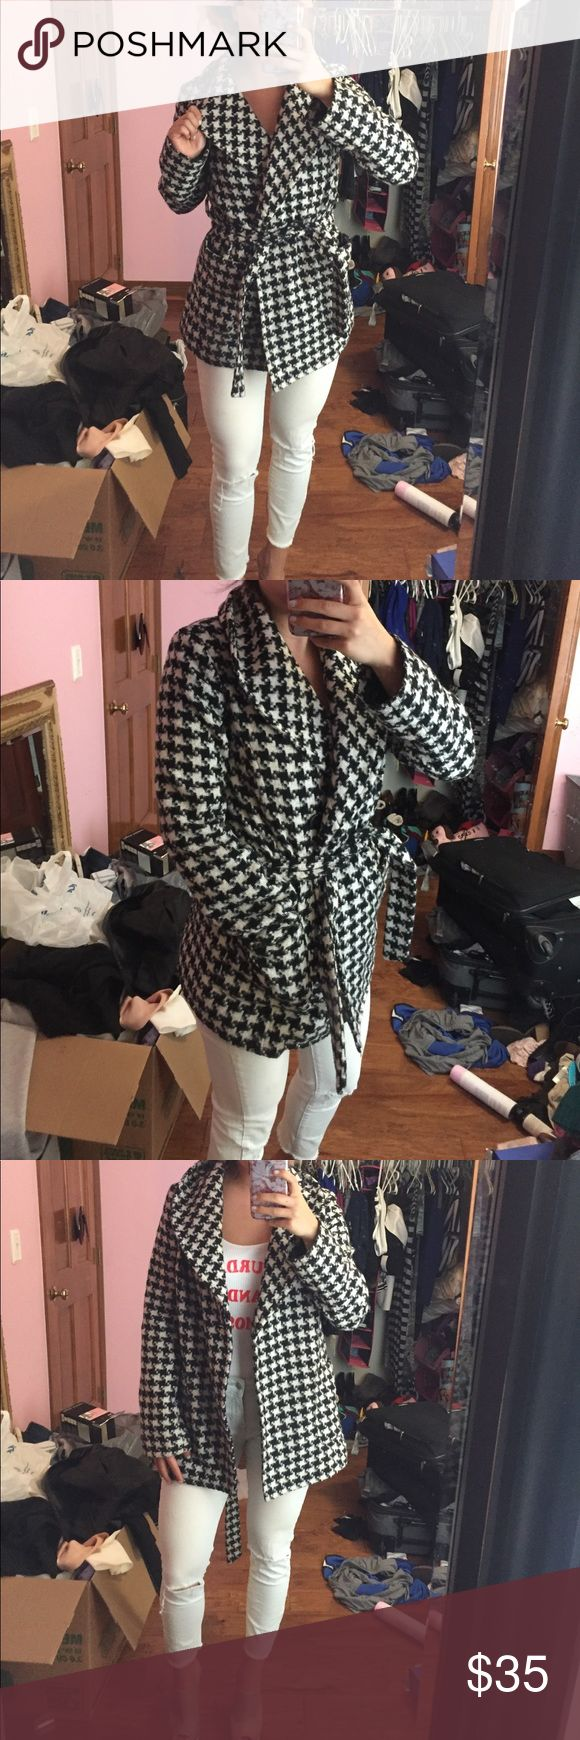 Houndstooth warm winter/fall peacoat Ties around waist has 2 pockets in the front really cute for fall/winter Jackets & Coats Pea Coats